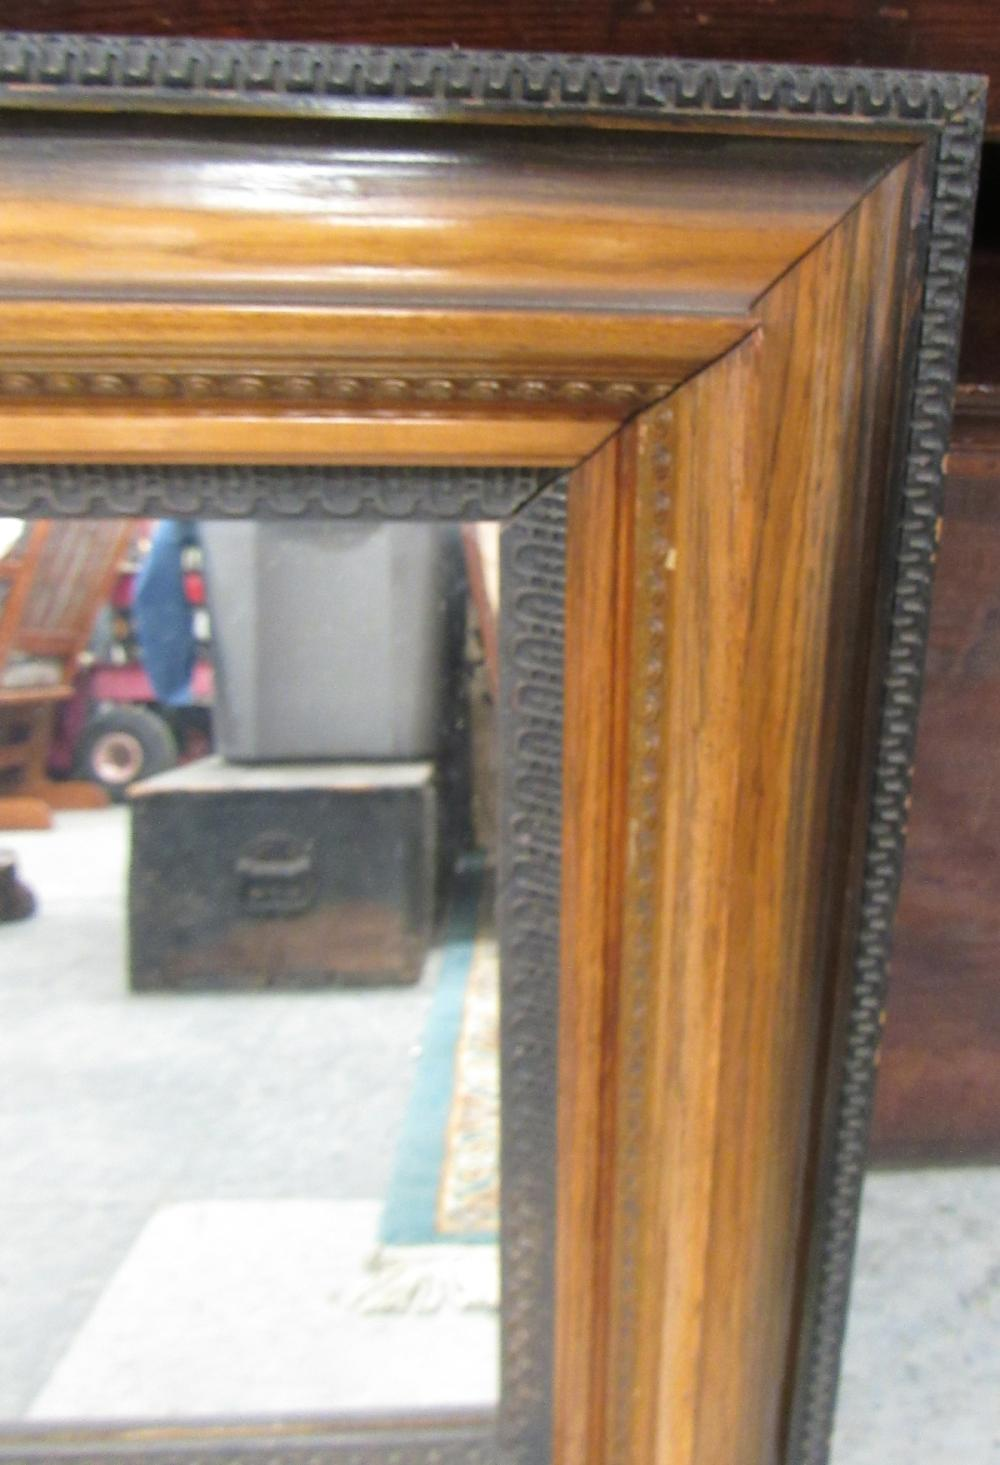 "Lot 122: 1800's Victorian Ornate Framed Mirror,20 x 23 1/2"", EC"